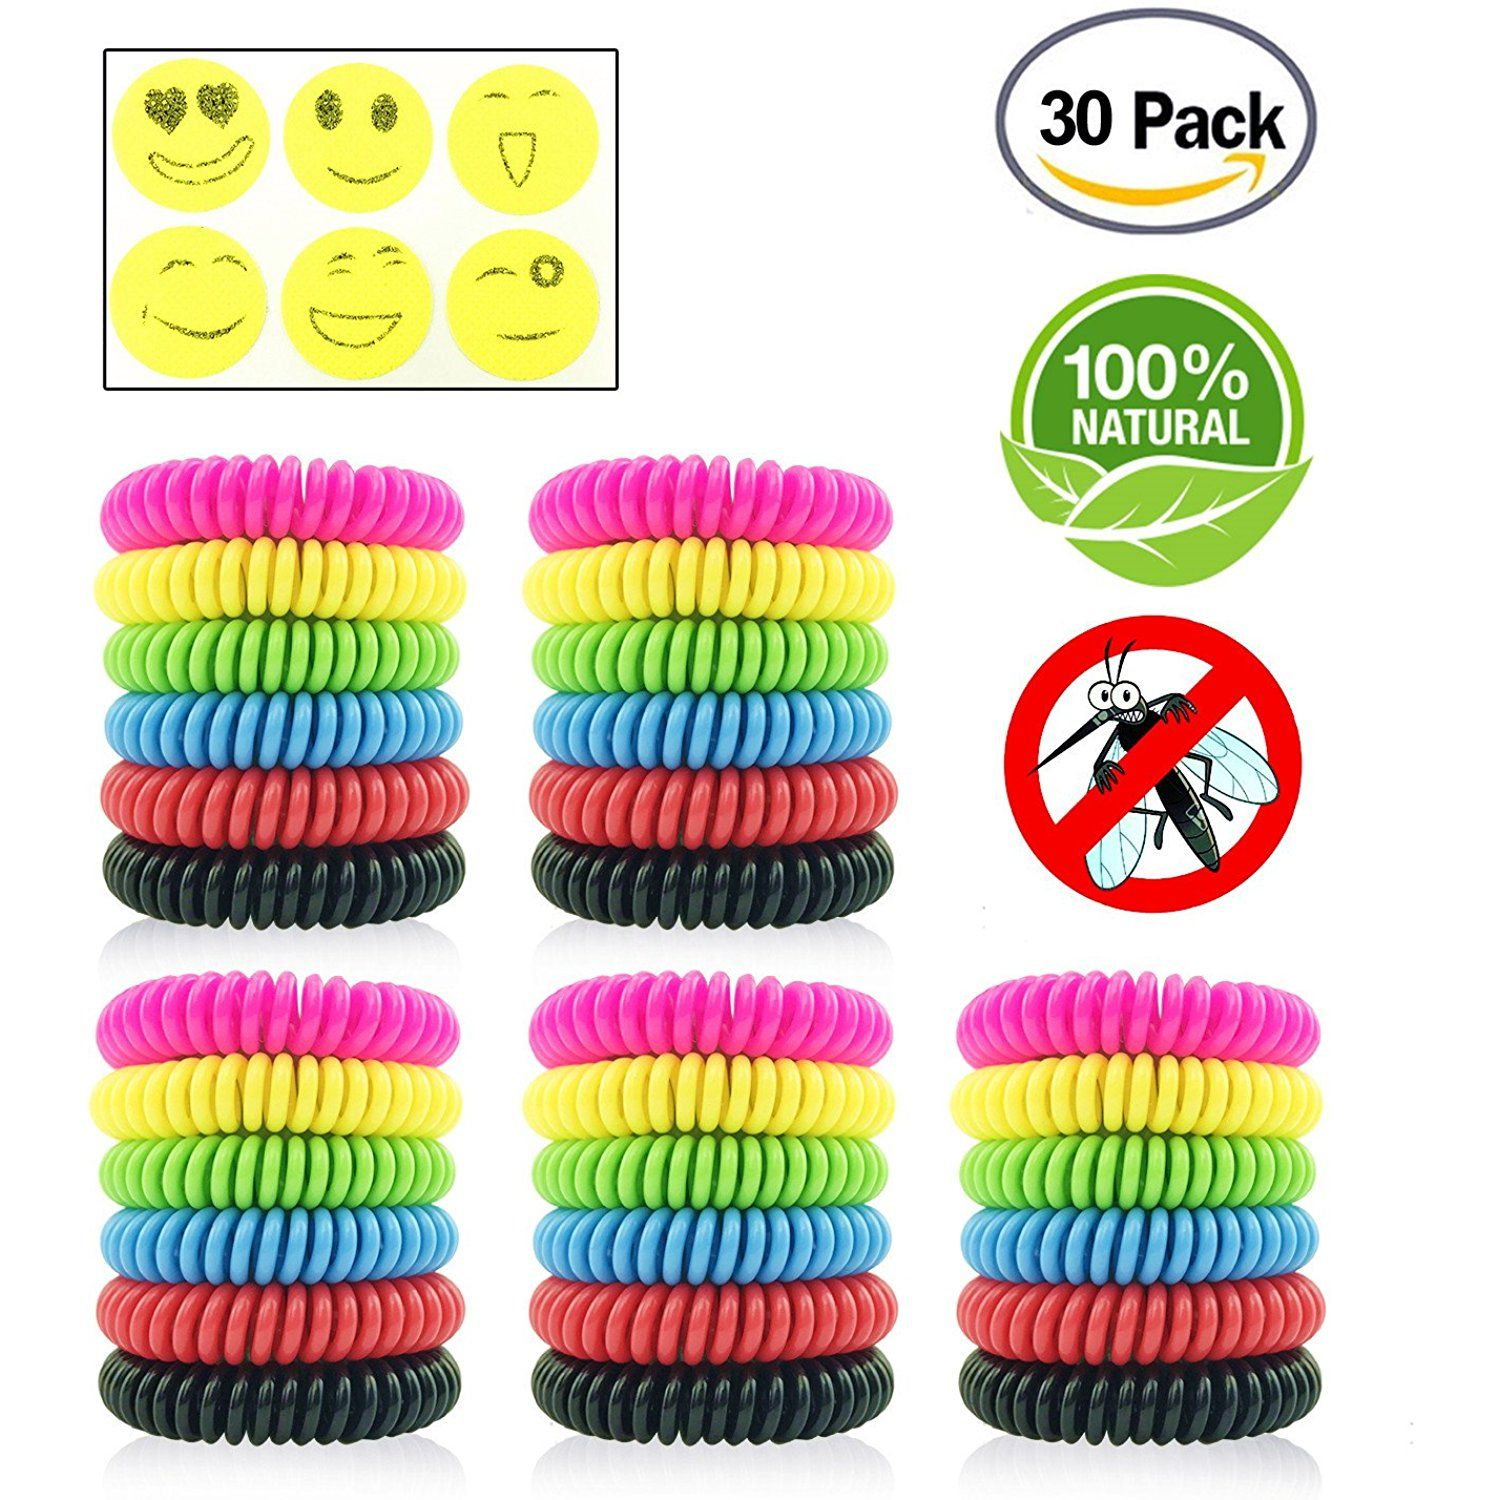 Mosquito Repellent Bracelets\Bands For Kids Adults Outdoor Activities Pack Of 5